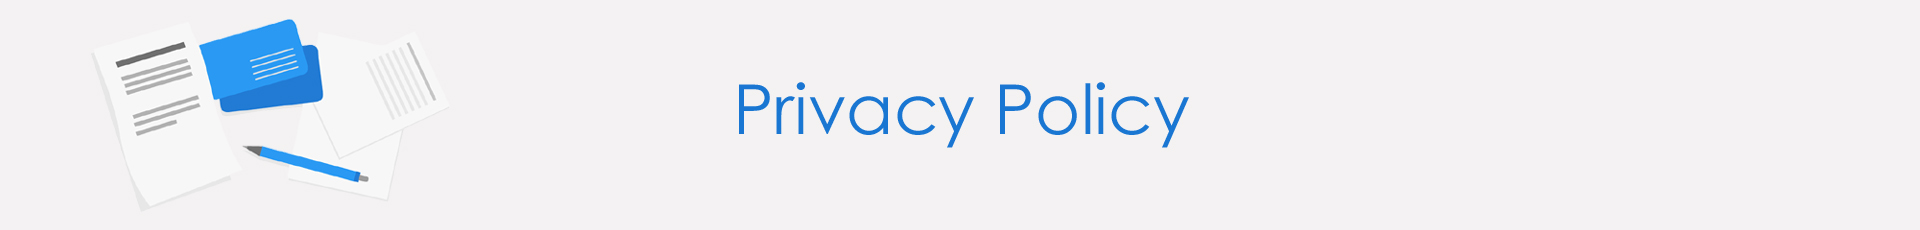 Privacy-Policy-banner